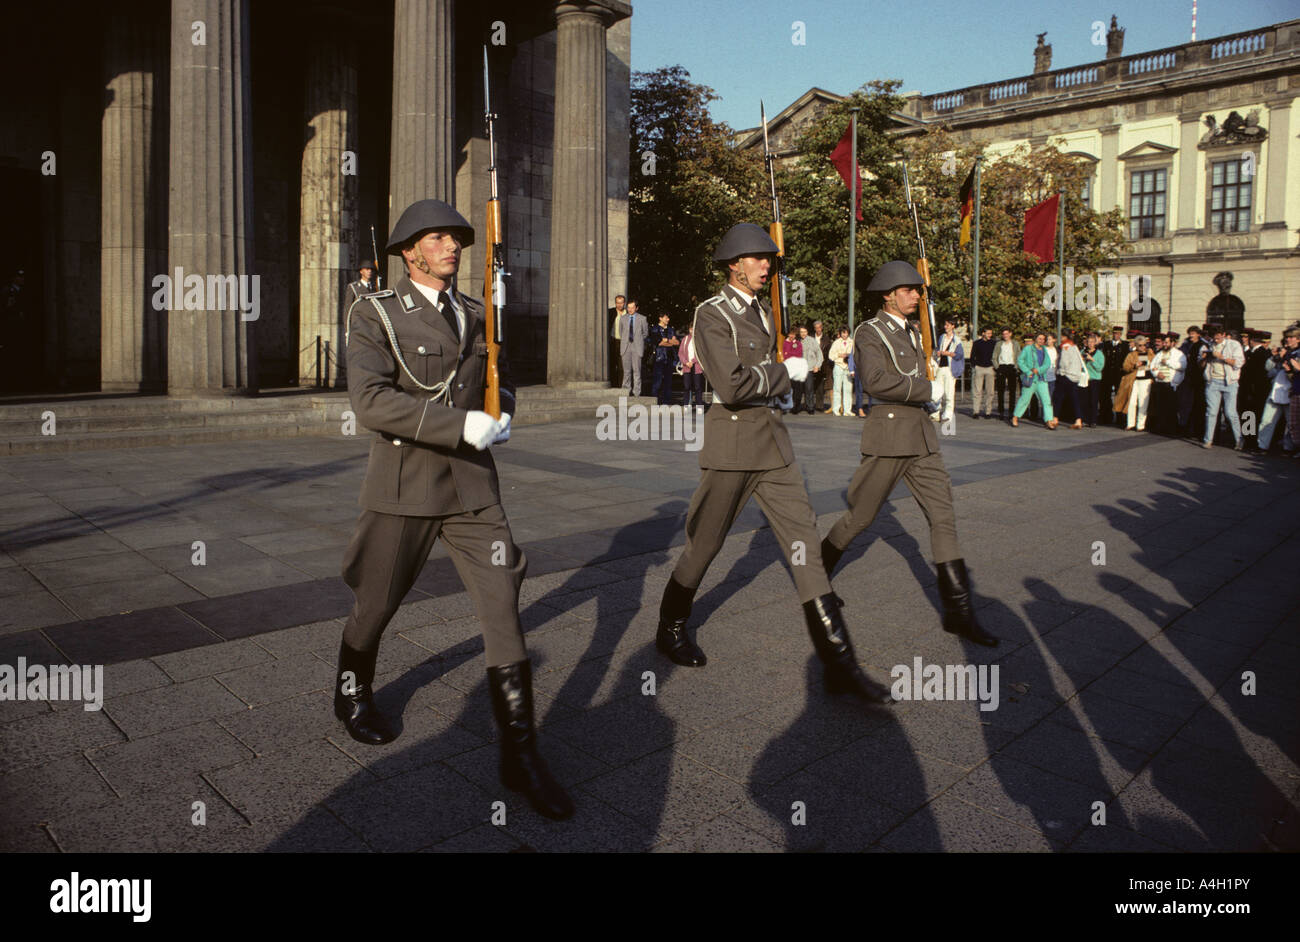 Changing of the guard of the National People's Army, Zeughaus, East Berlin, GDR, Germany - Stock Image